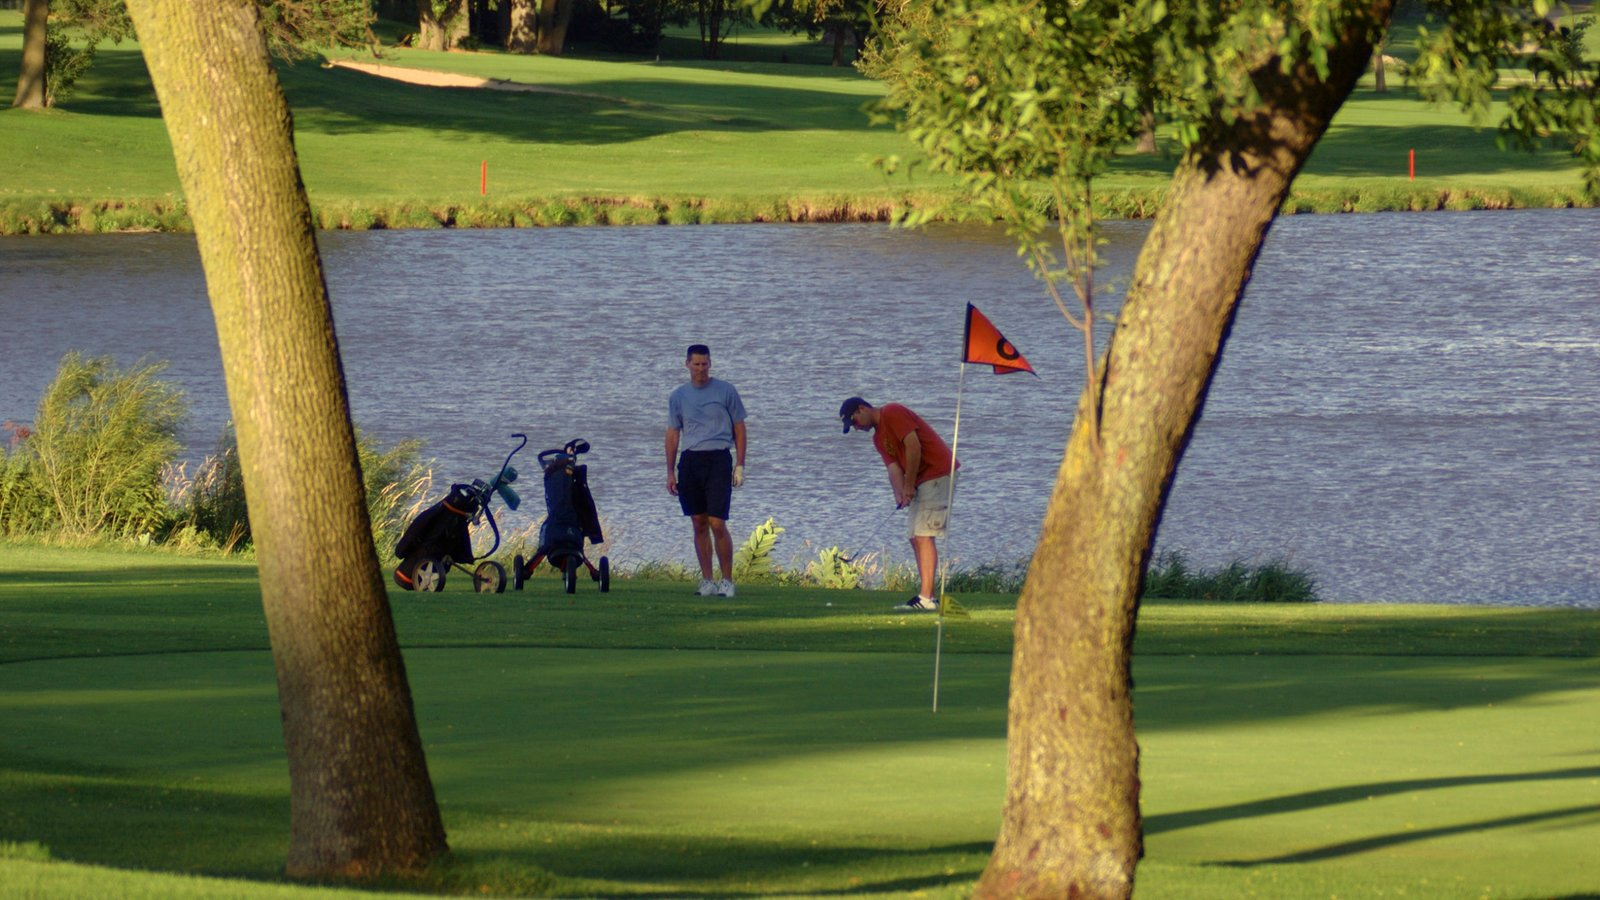 Rockford featuring a lake or waterhole and golf as well as a small group of people